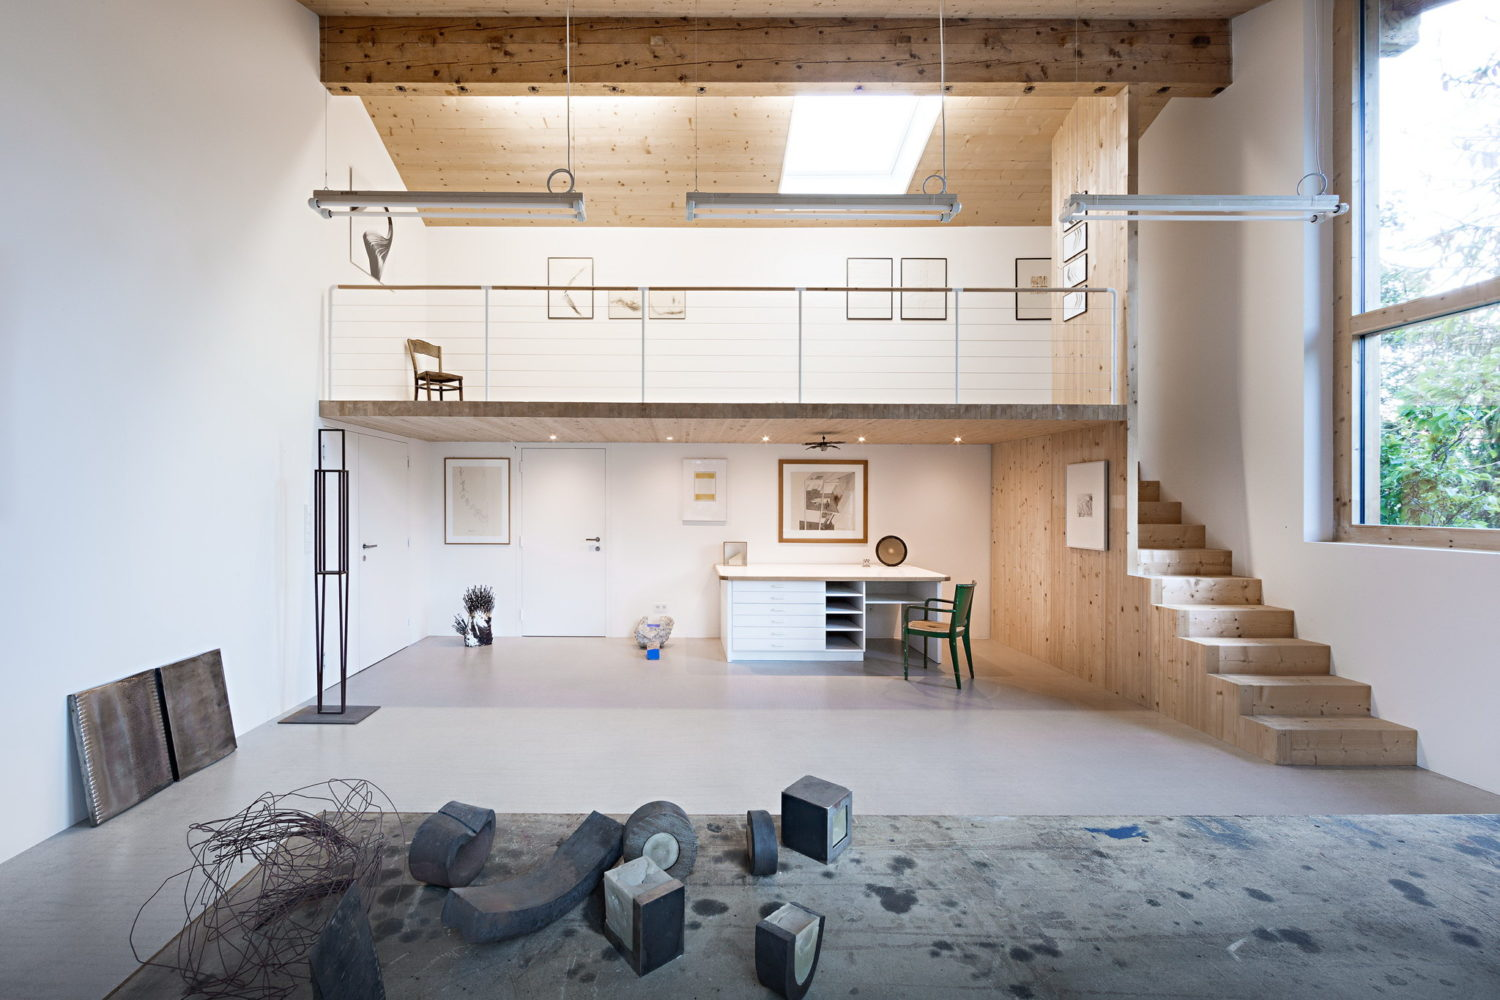 Workshop Renovation by Messner Architects